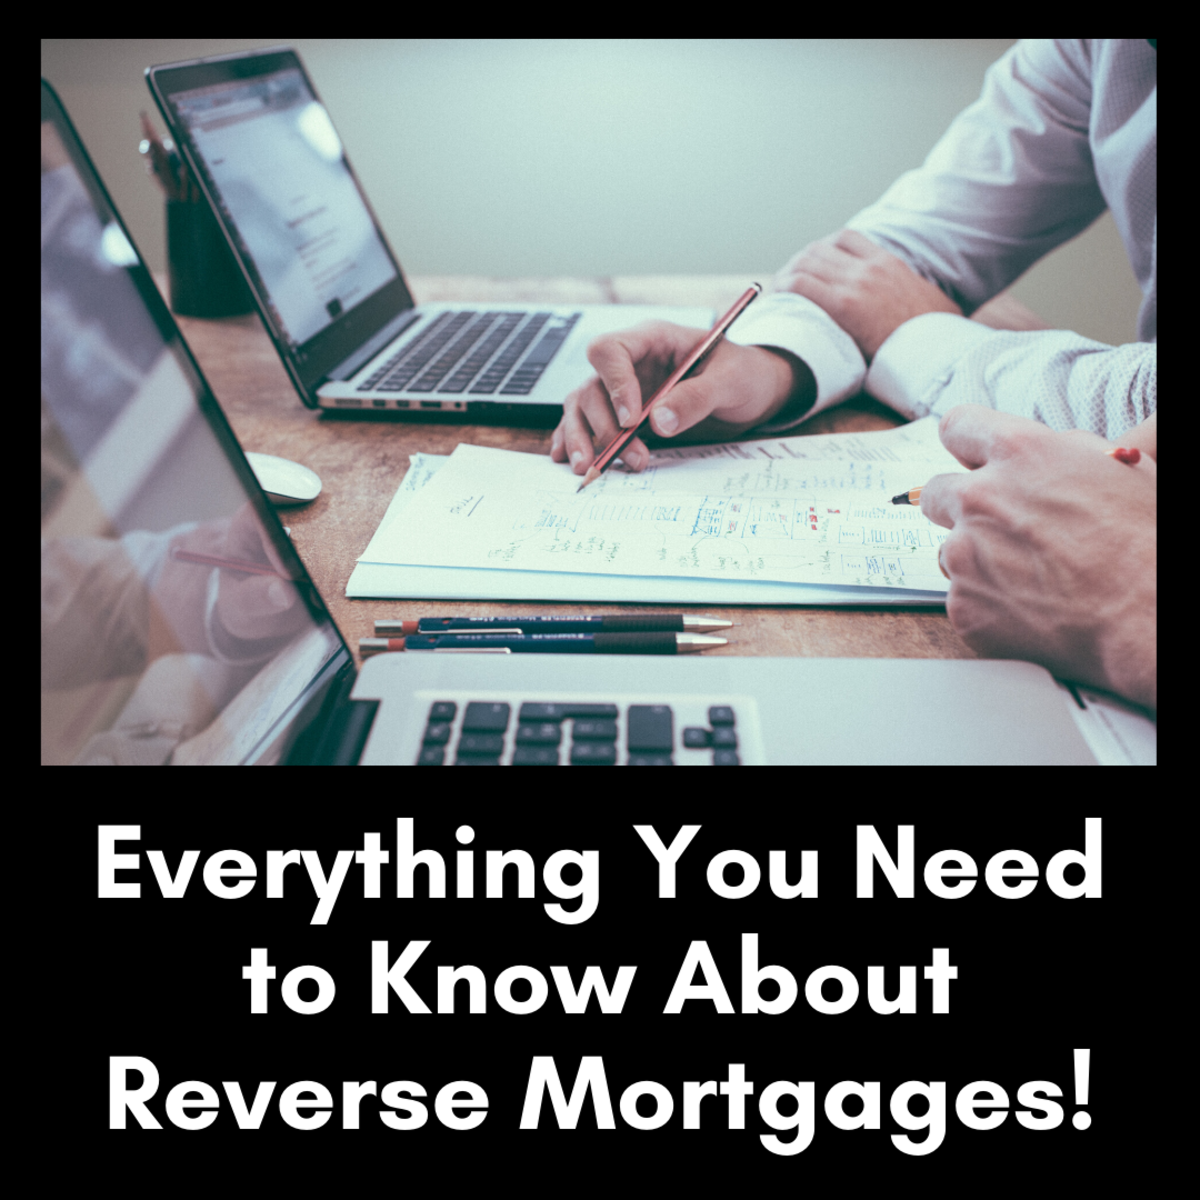 Is a Reverse Mortgage a Good Idea?